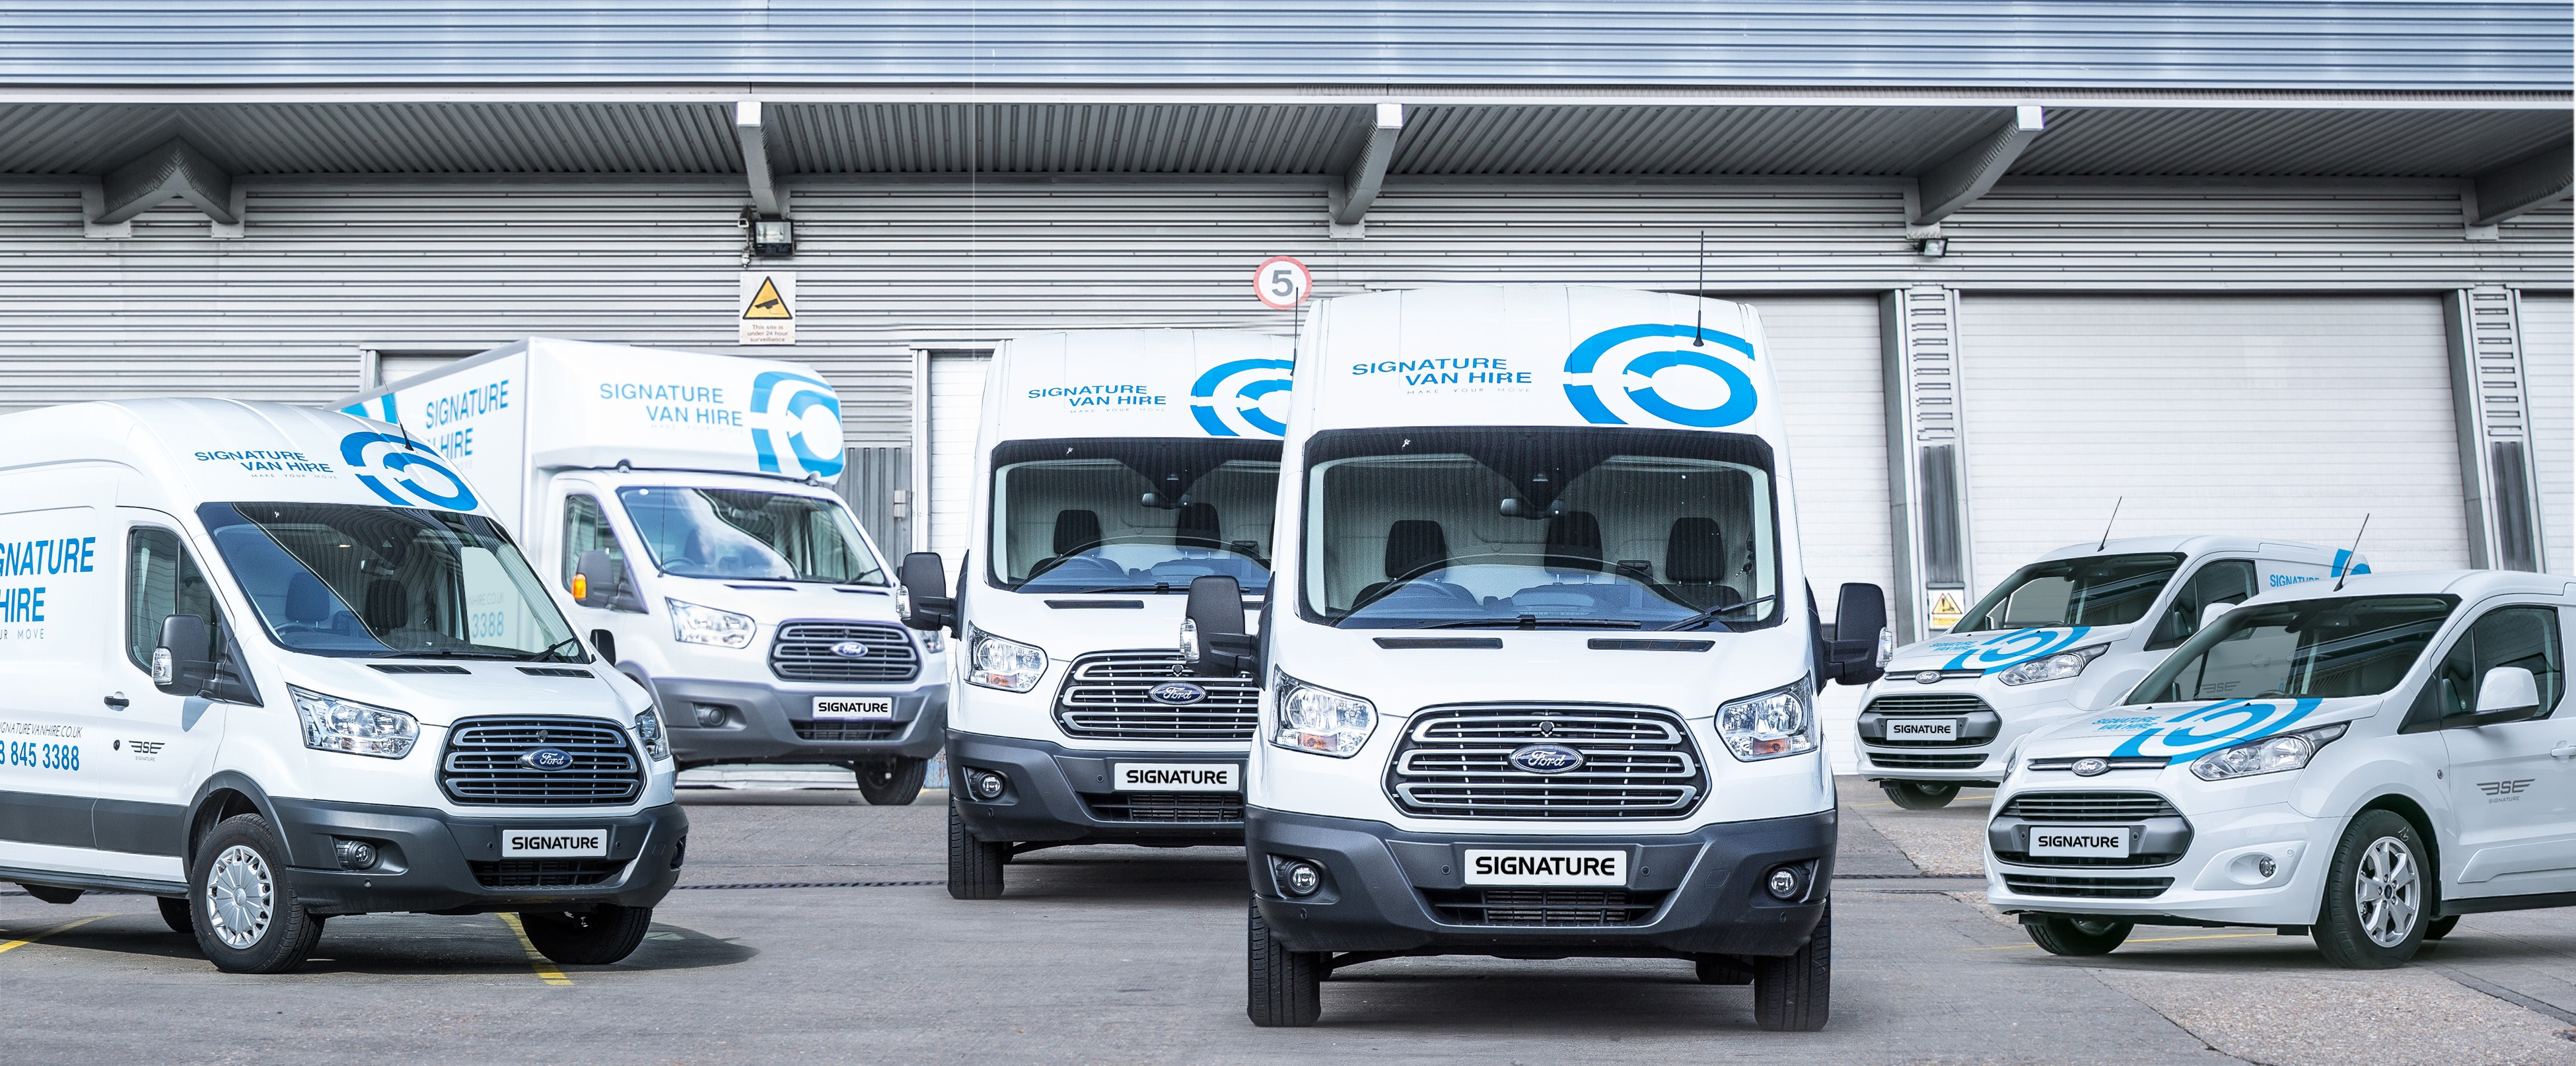 Signature Van Hire Fleet has Increased